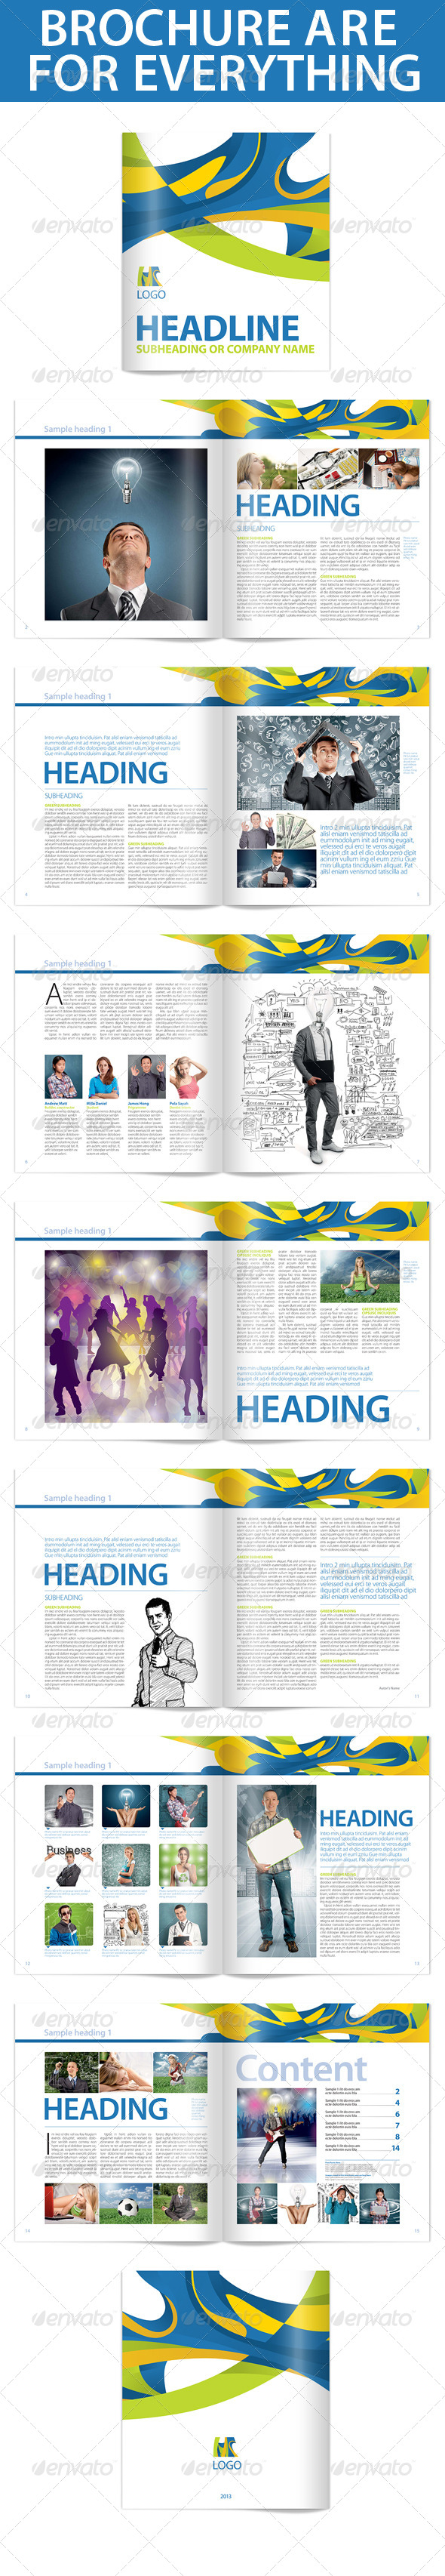 Brochure For Anything Template - Brochures Print Templates